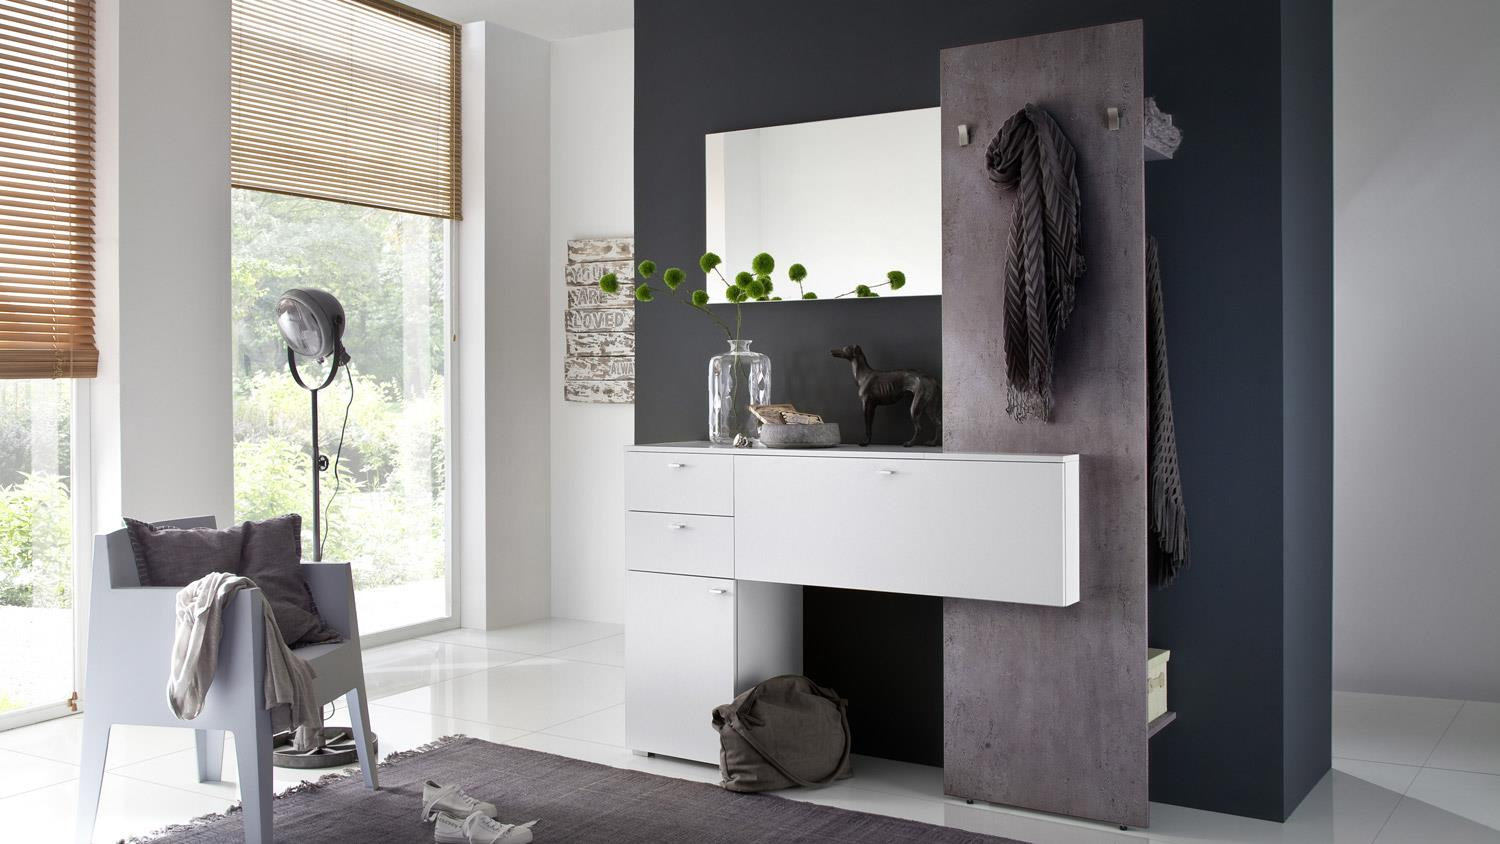 garderobe zuba 3 wandgarderobe flurgarderobe diele wei. Black Bedroom Furniture Sets. Home Design Ideas